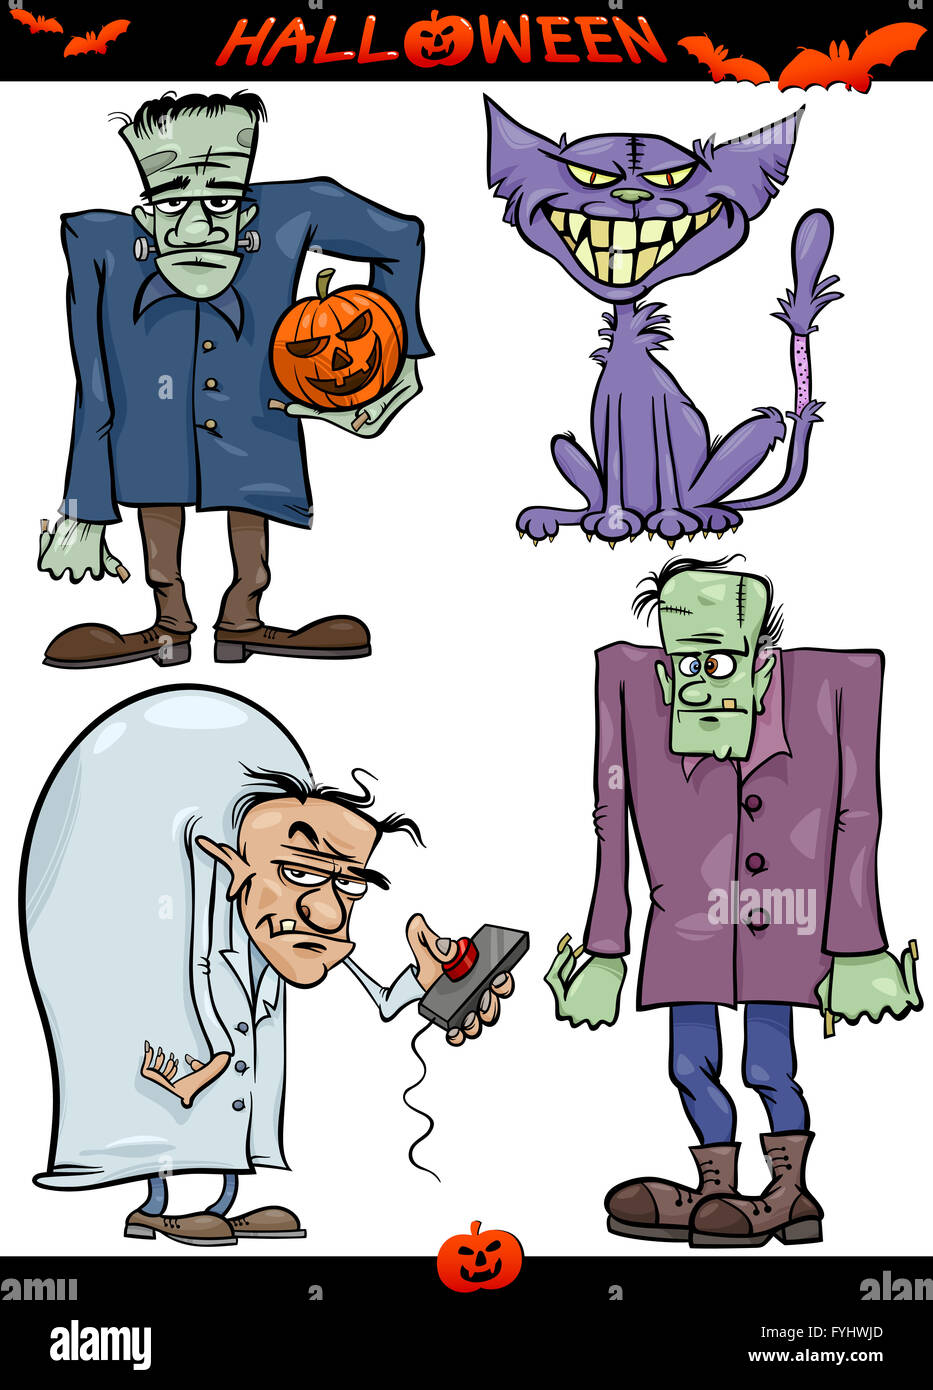 Halloween Cartoon Creepy Themes Set - Stock Image